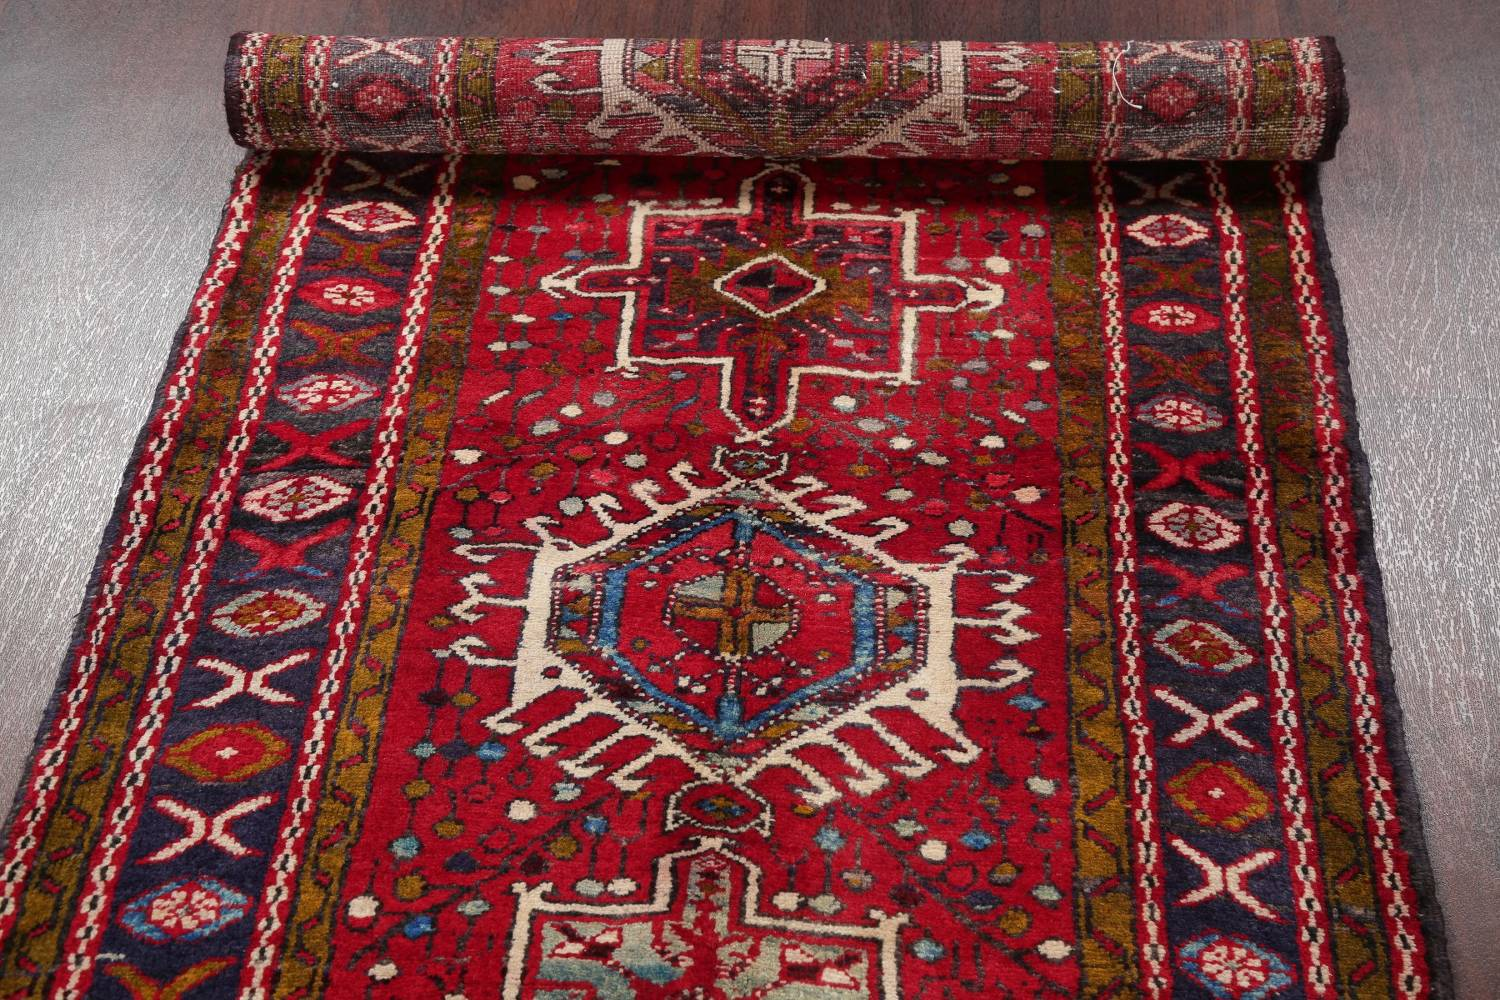 One-of-a-Kind Red Geometric Heriz Persian Hand-Knotted 4x13 Wool Runner Rug image 16